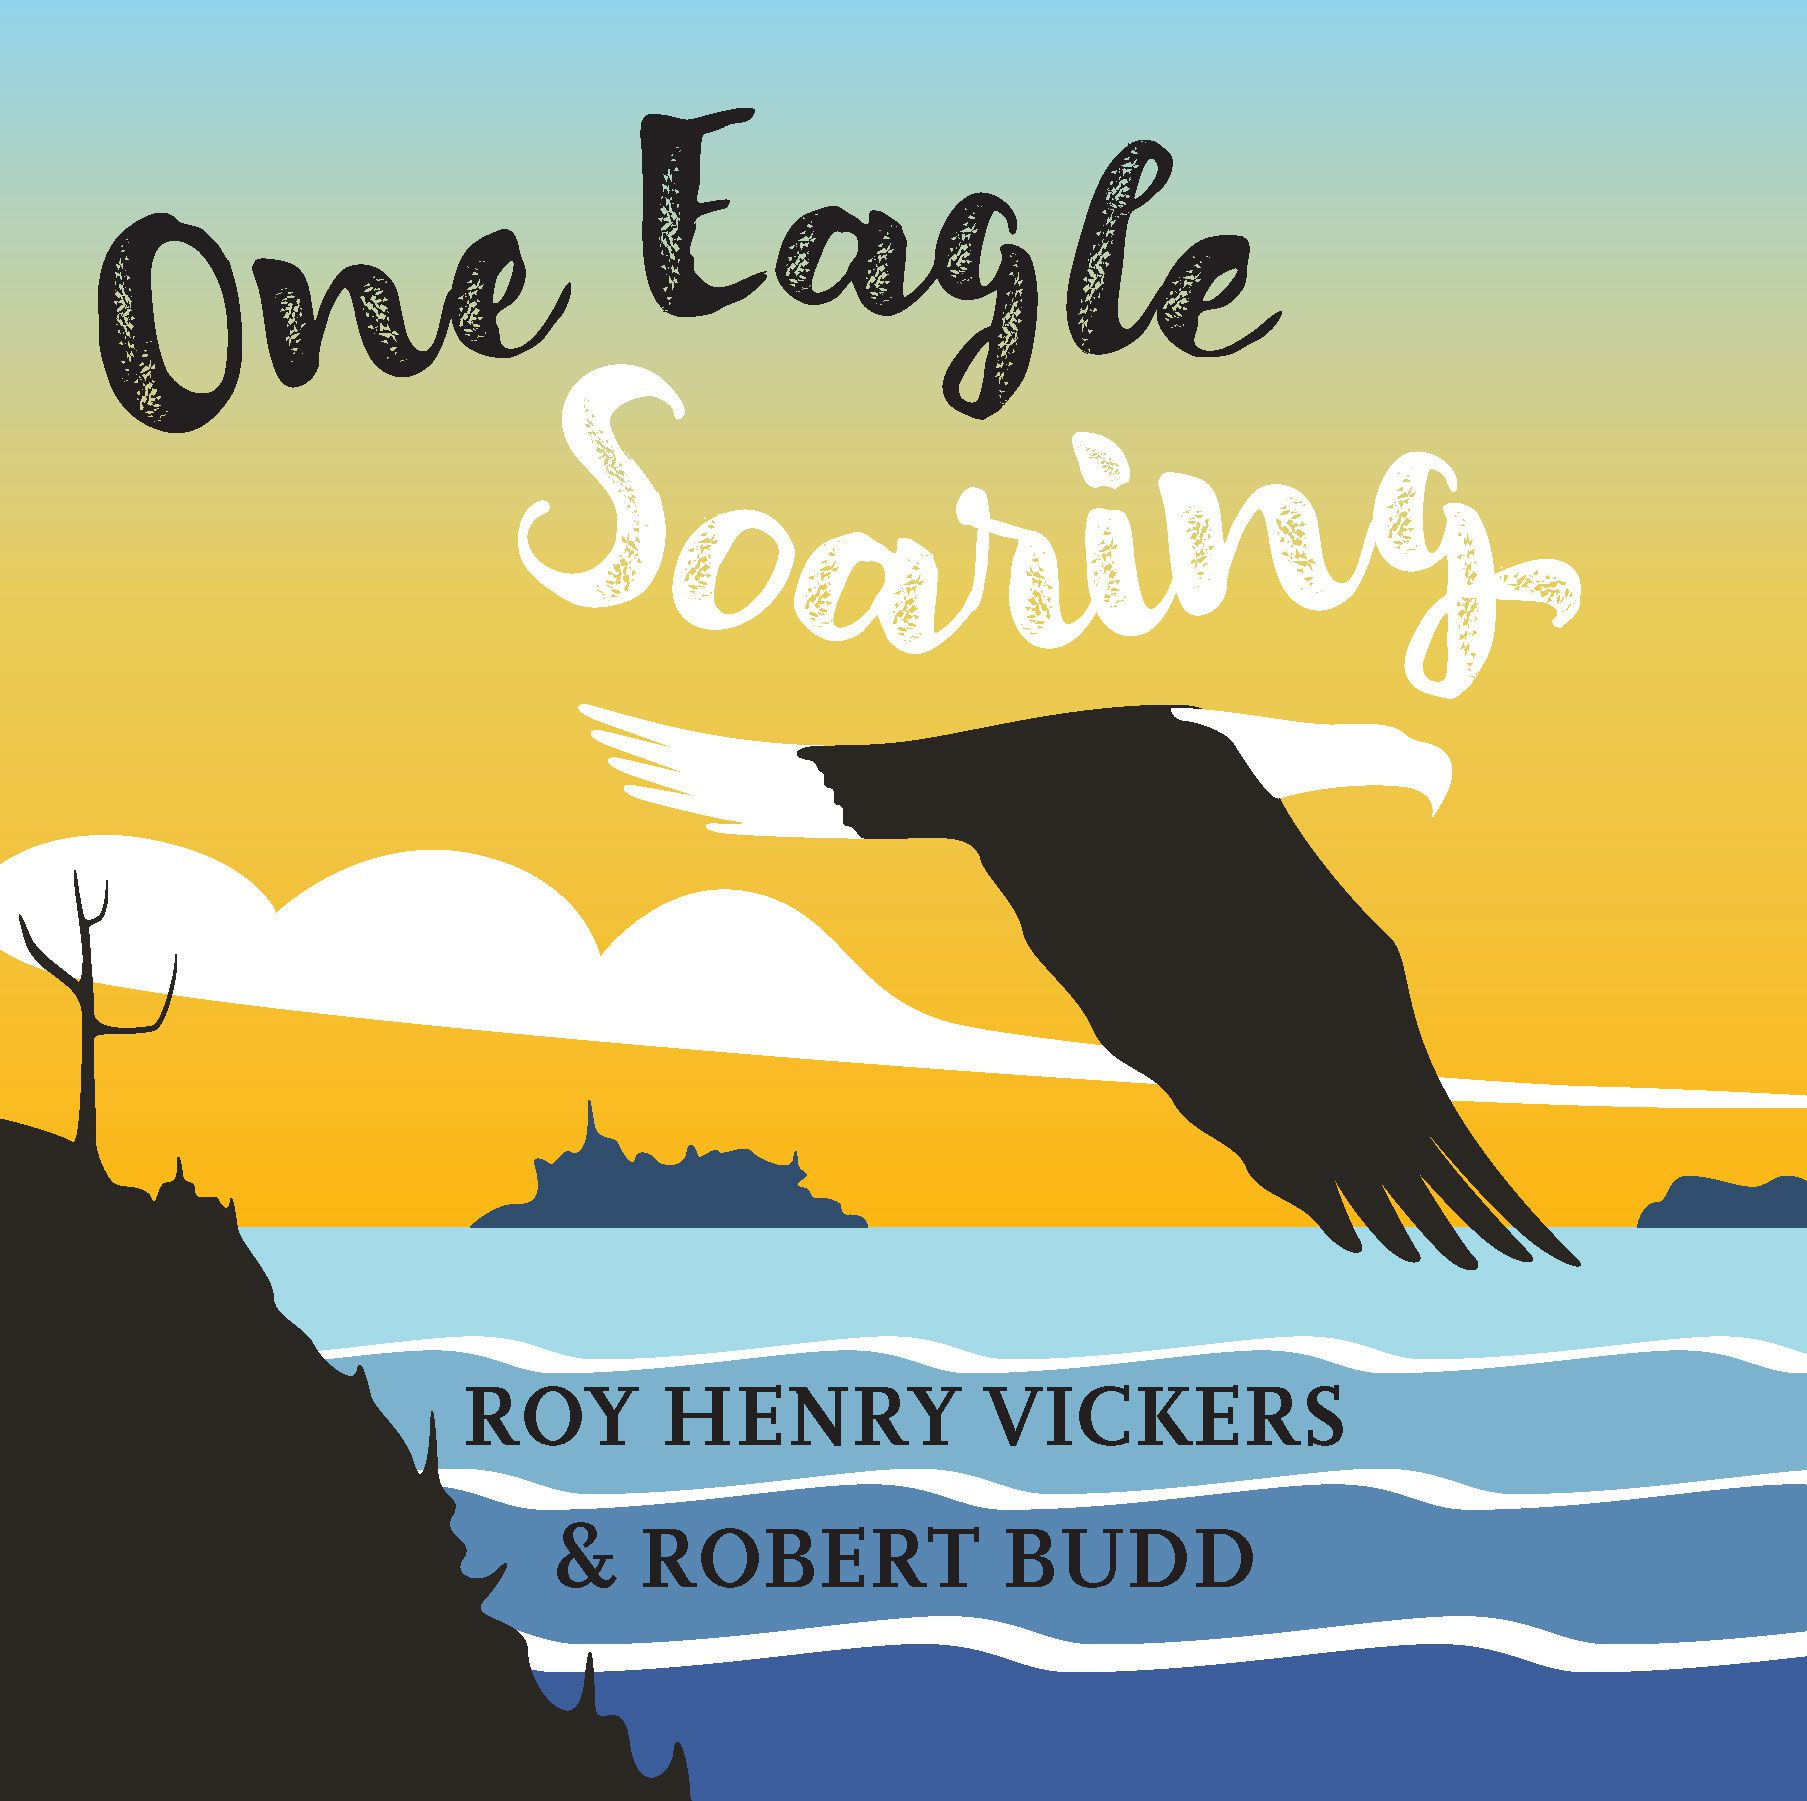 One Eagle Soaring by Roy Henry Vickers and Robert Budd